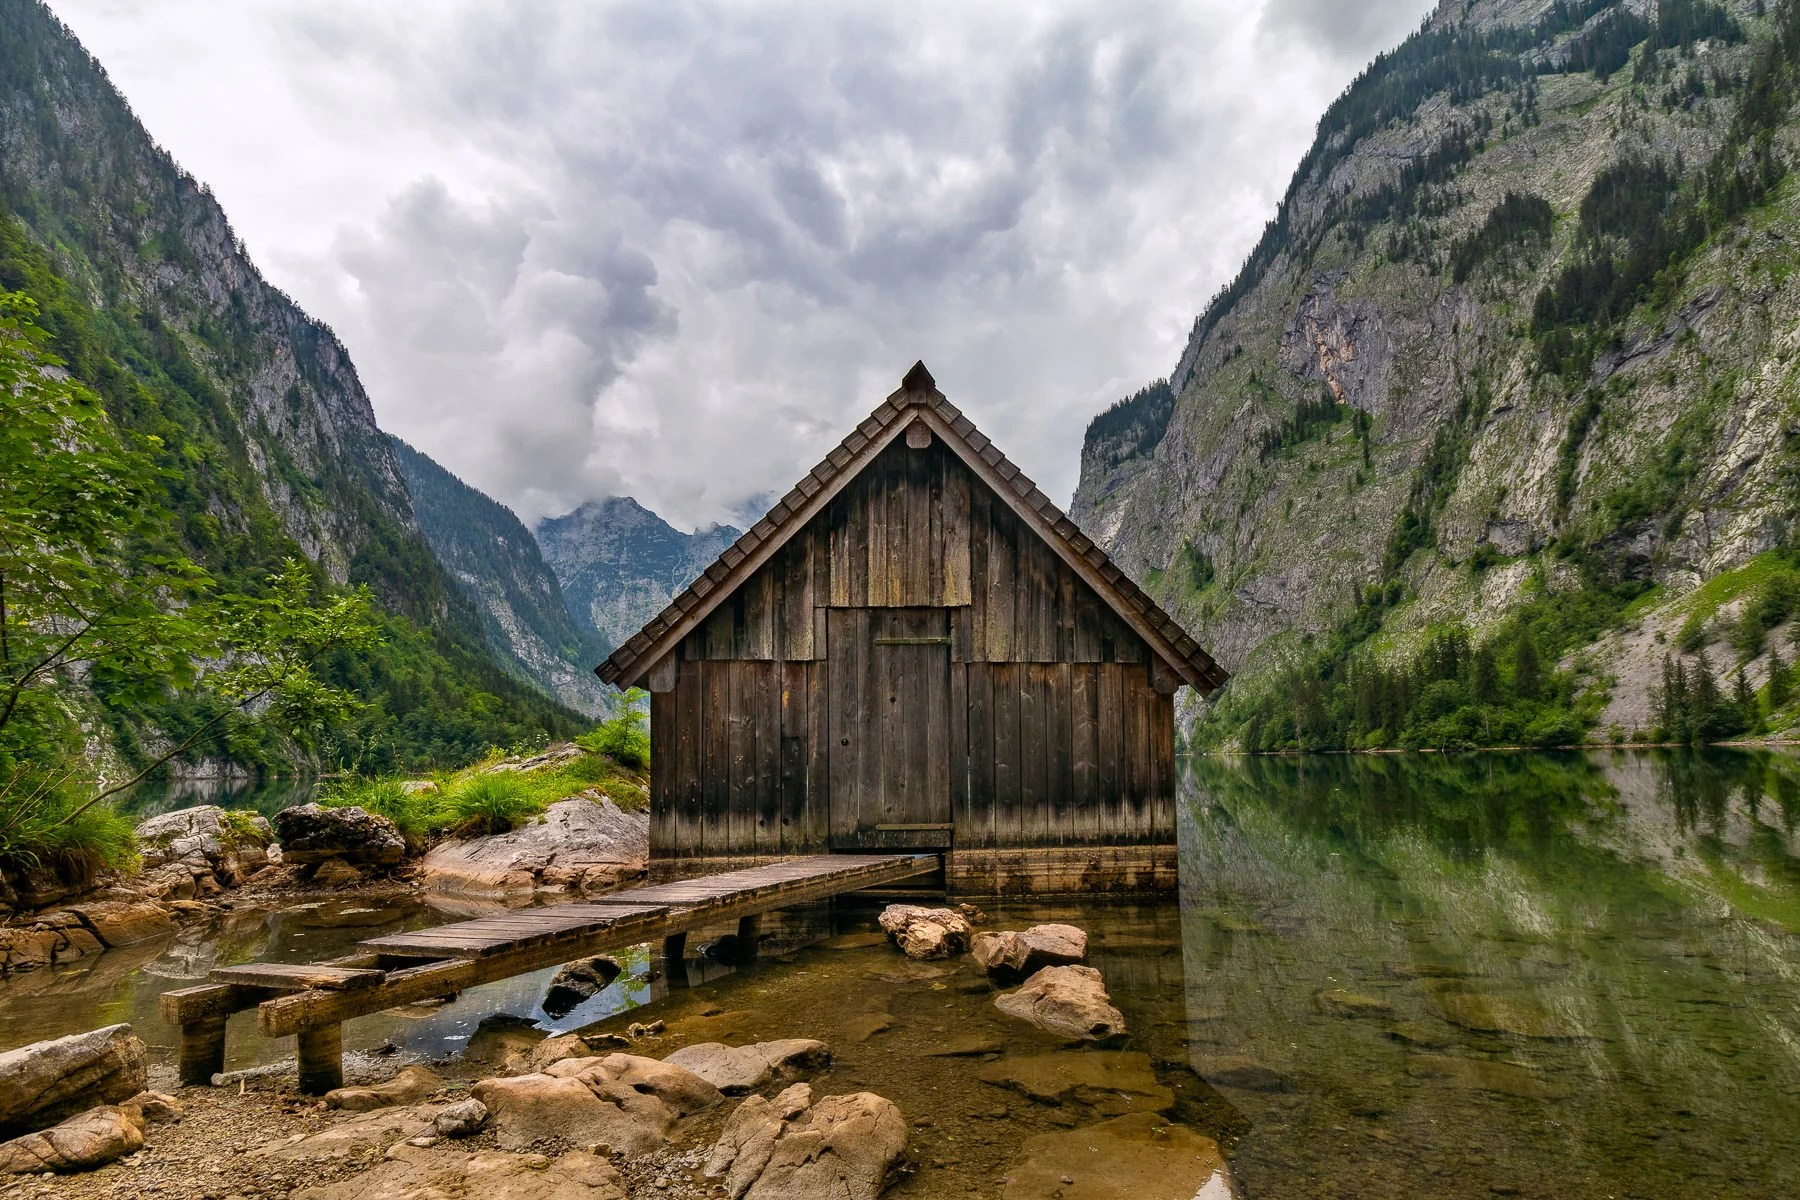 Boathouses of Lake Obersee